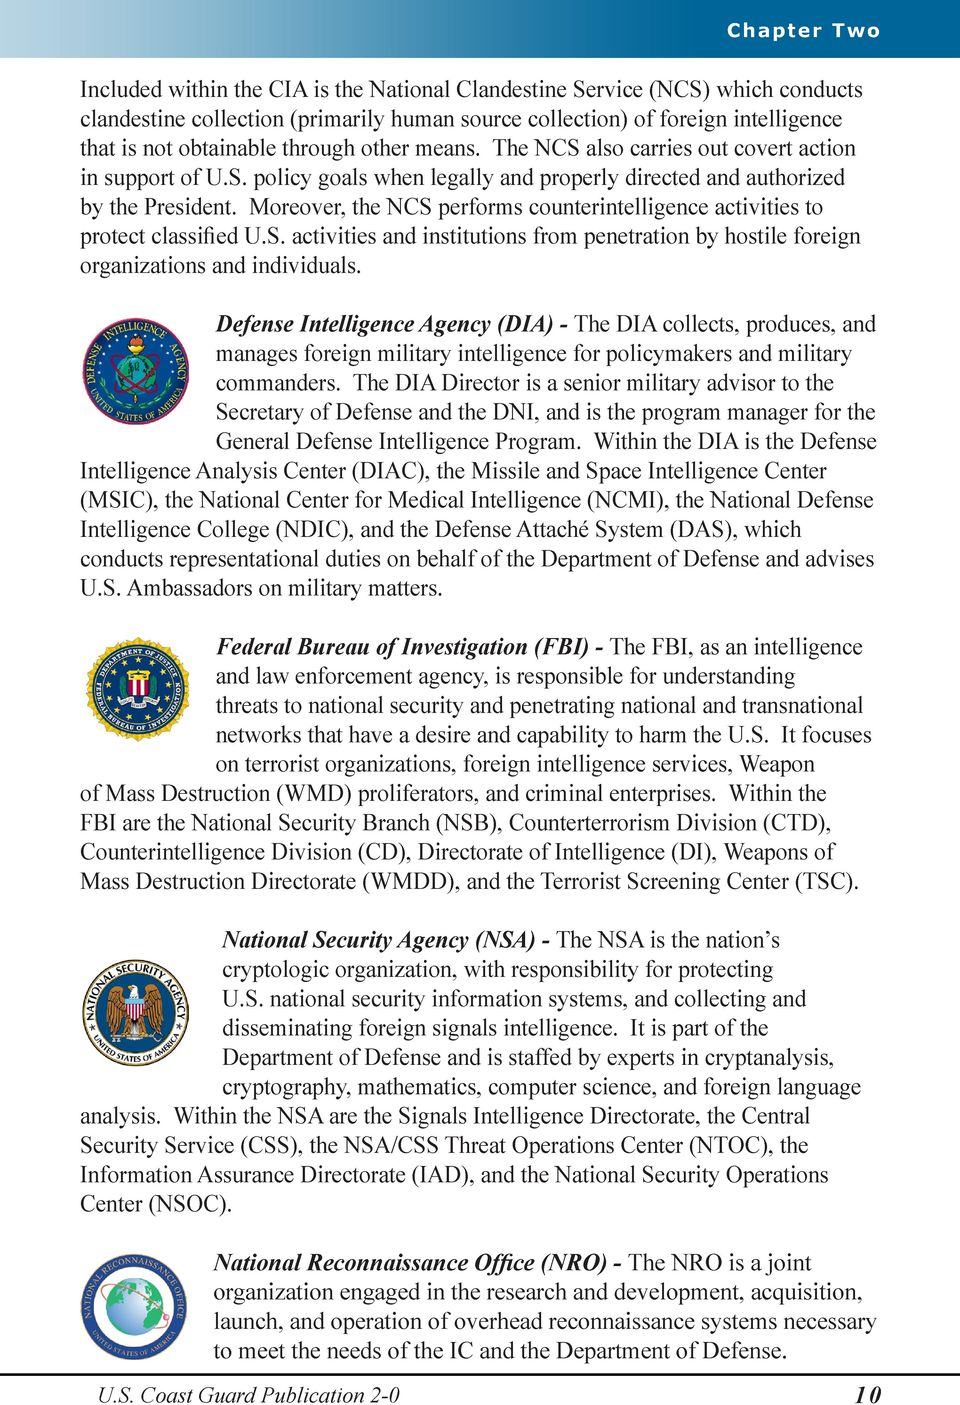 Moreover, the NCS performs counterintelligence activities to protect classified U.S. activities and institutions from penetration by hostile foreign organizations and individuals.